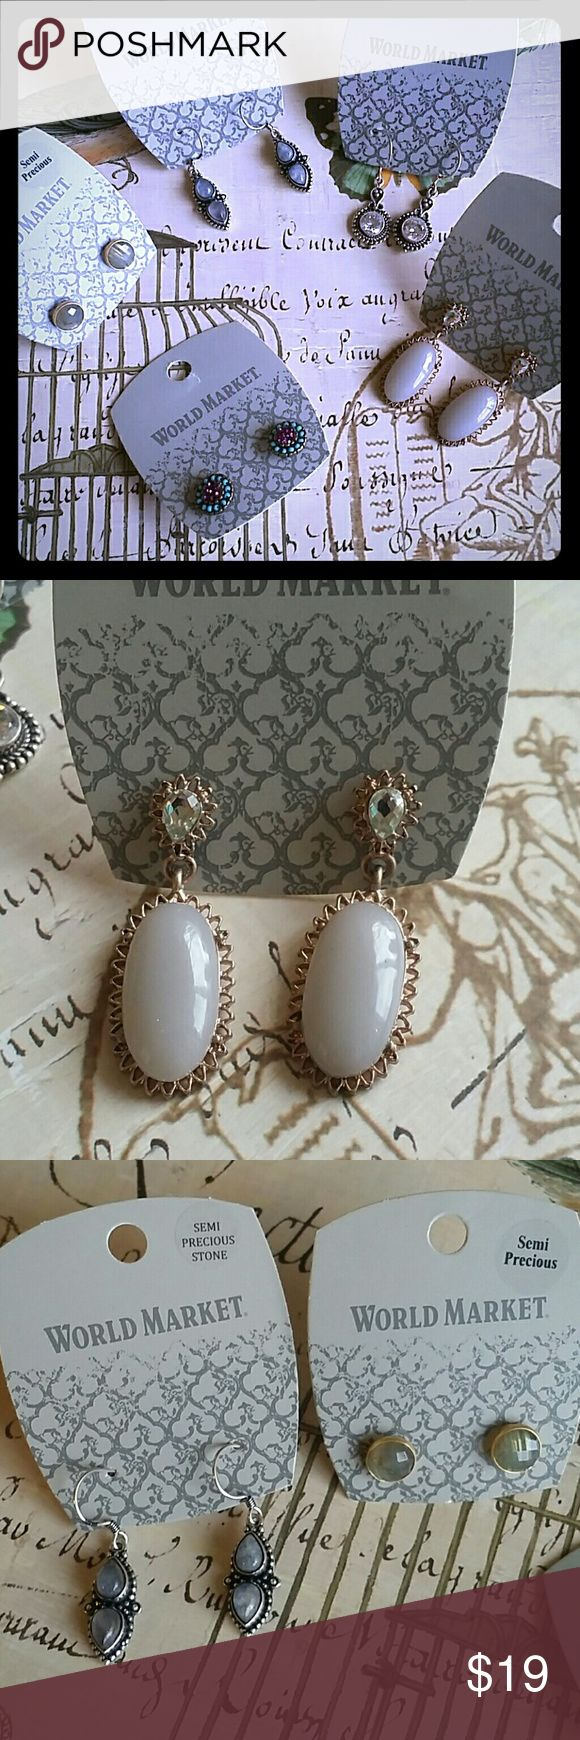 💎🌟Semi-precious 5pc earrings lot! ALL NWT🎀🌟 🌟 5 pairs of earrings as pictured  💎 ALL BRAND NEW WITH TAGS FROM WORLD MARKET  🎀 2 are marked Semi-precious  🌟 both silver and gold tones  💎 Nickel and lead free  🎀 Gorgeous boho and Glam styles!  🌟 High quality materials  💎 I SHIP WITHIN 24 HOURS!   🎊 SAVE ON BUNDLES 🎊  SHARE, I'll always share back!   😄🎀CHECK OUT MY CLOSET FOR MORE GREAT DEALS ON HIGH END BAGS, COSMETICS, TOYS, JEWELRY AND MORE!🎀😄 WORLD MARKET  Jewelry Earrings